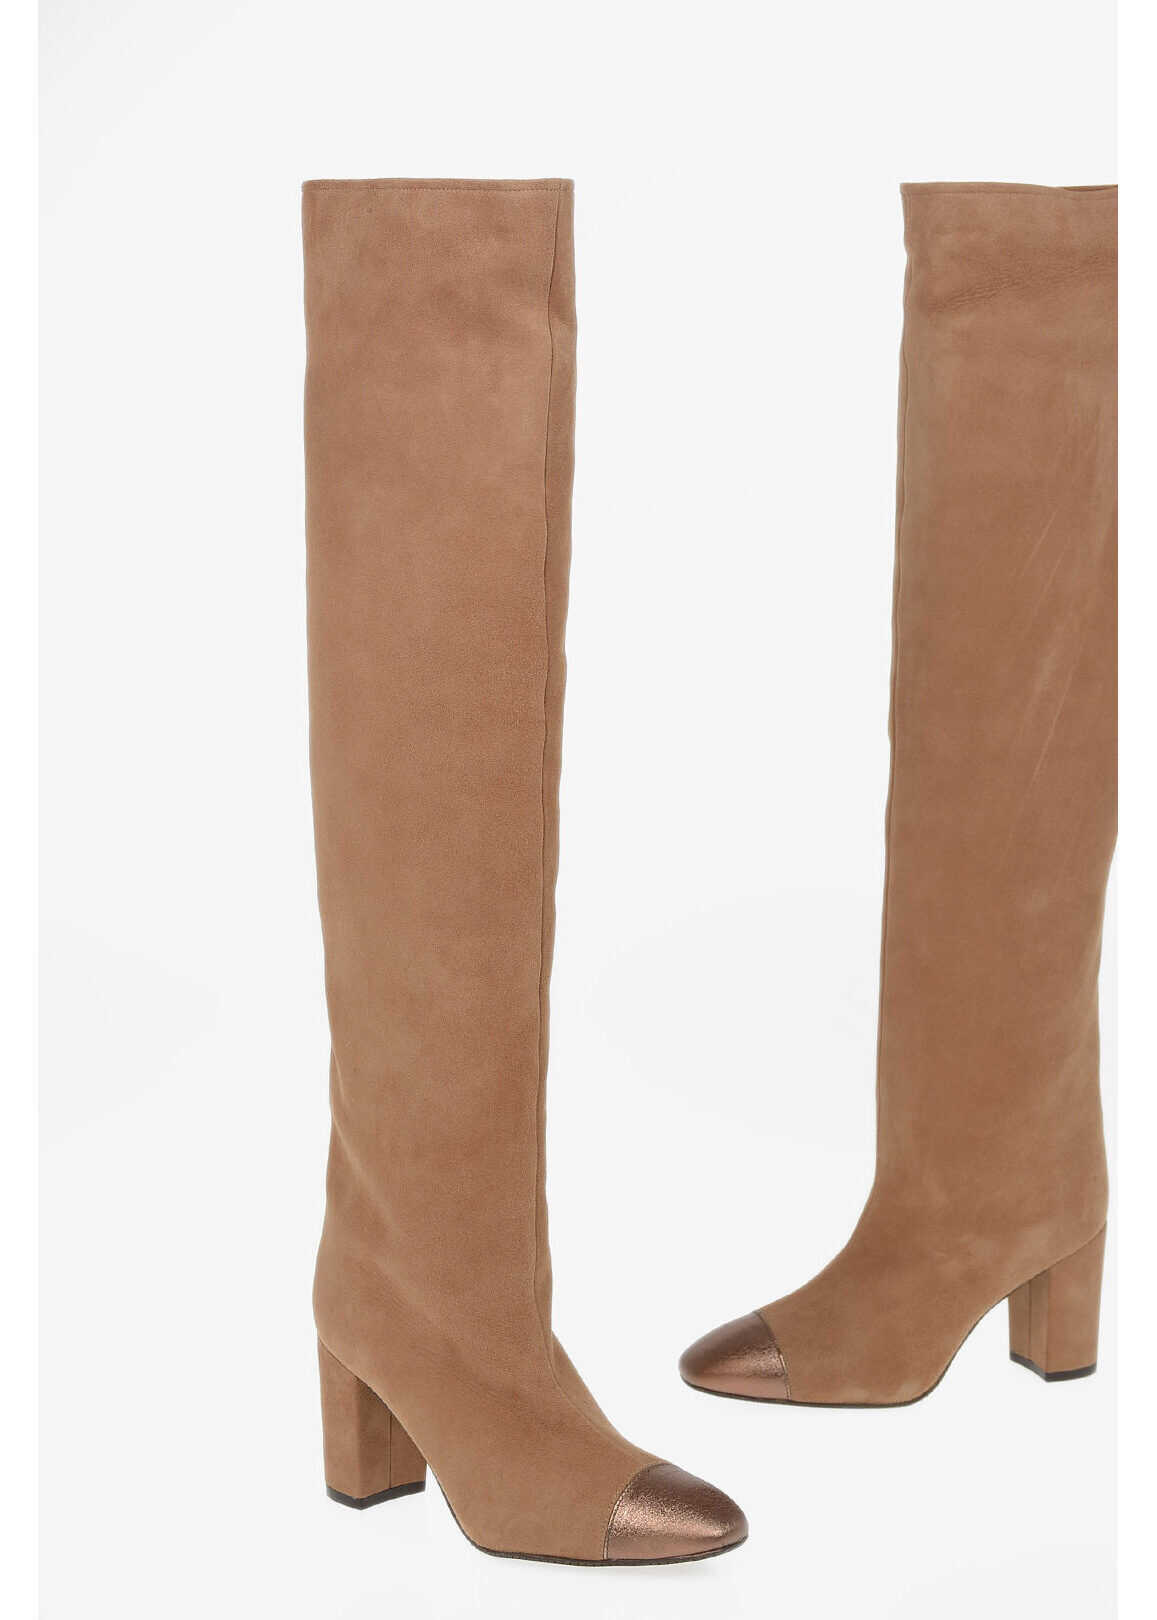 Stuart Weitzman Suede KIMBERLY Pull Over the Knee Boots 8.5cm BEIGE imagine b-mall.ro